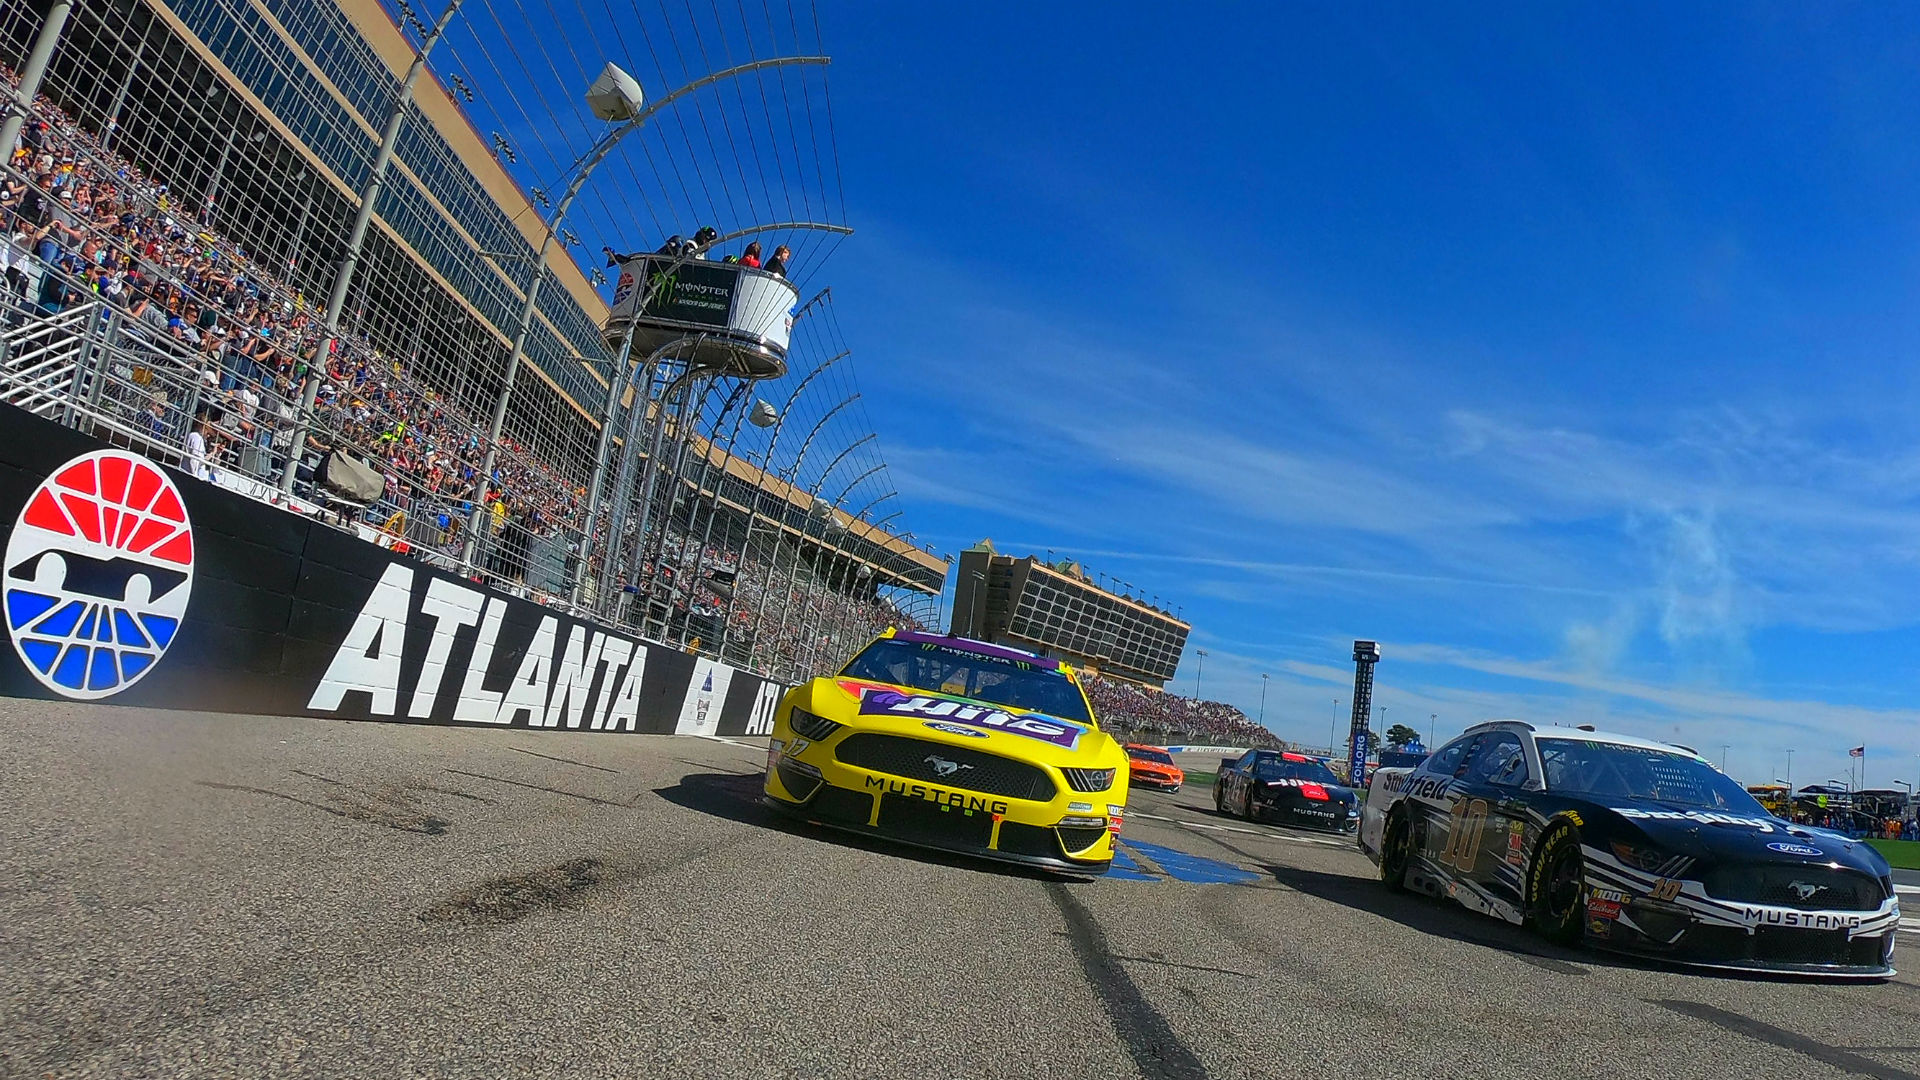 Photo of Odds for NASCAR race at Atlanta: Expert picks & favorites to win Sunday's Cup Series race